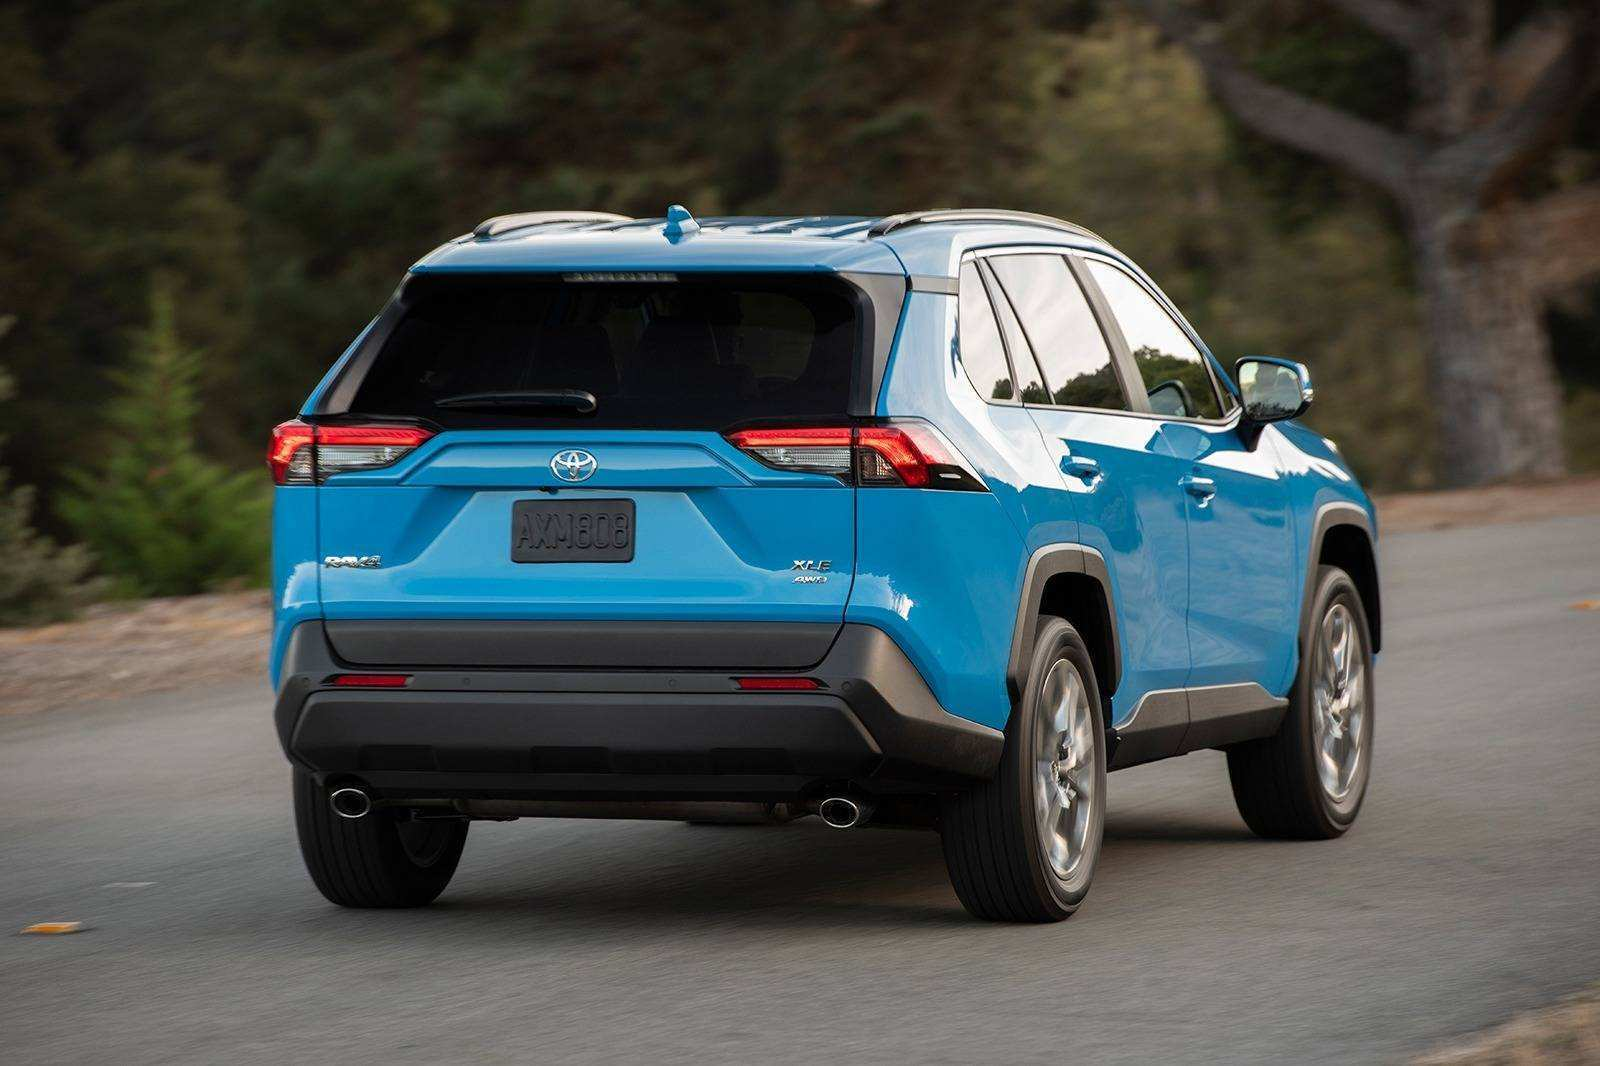 59 New The Rav Toyota 2019 Price Specs Release for The Rav Toyota 2019 Price Specs